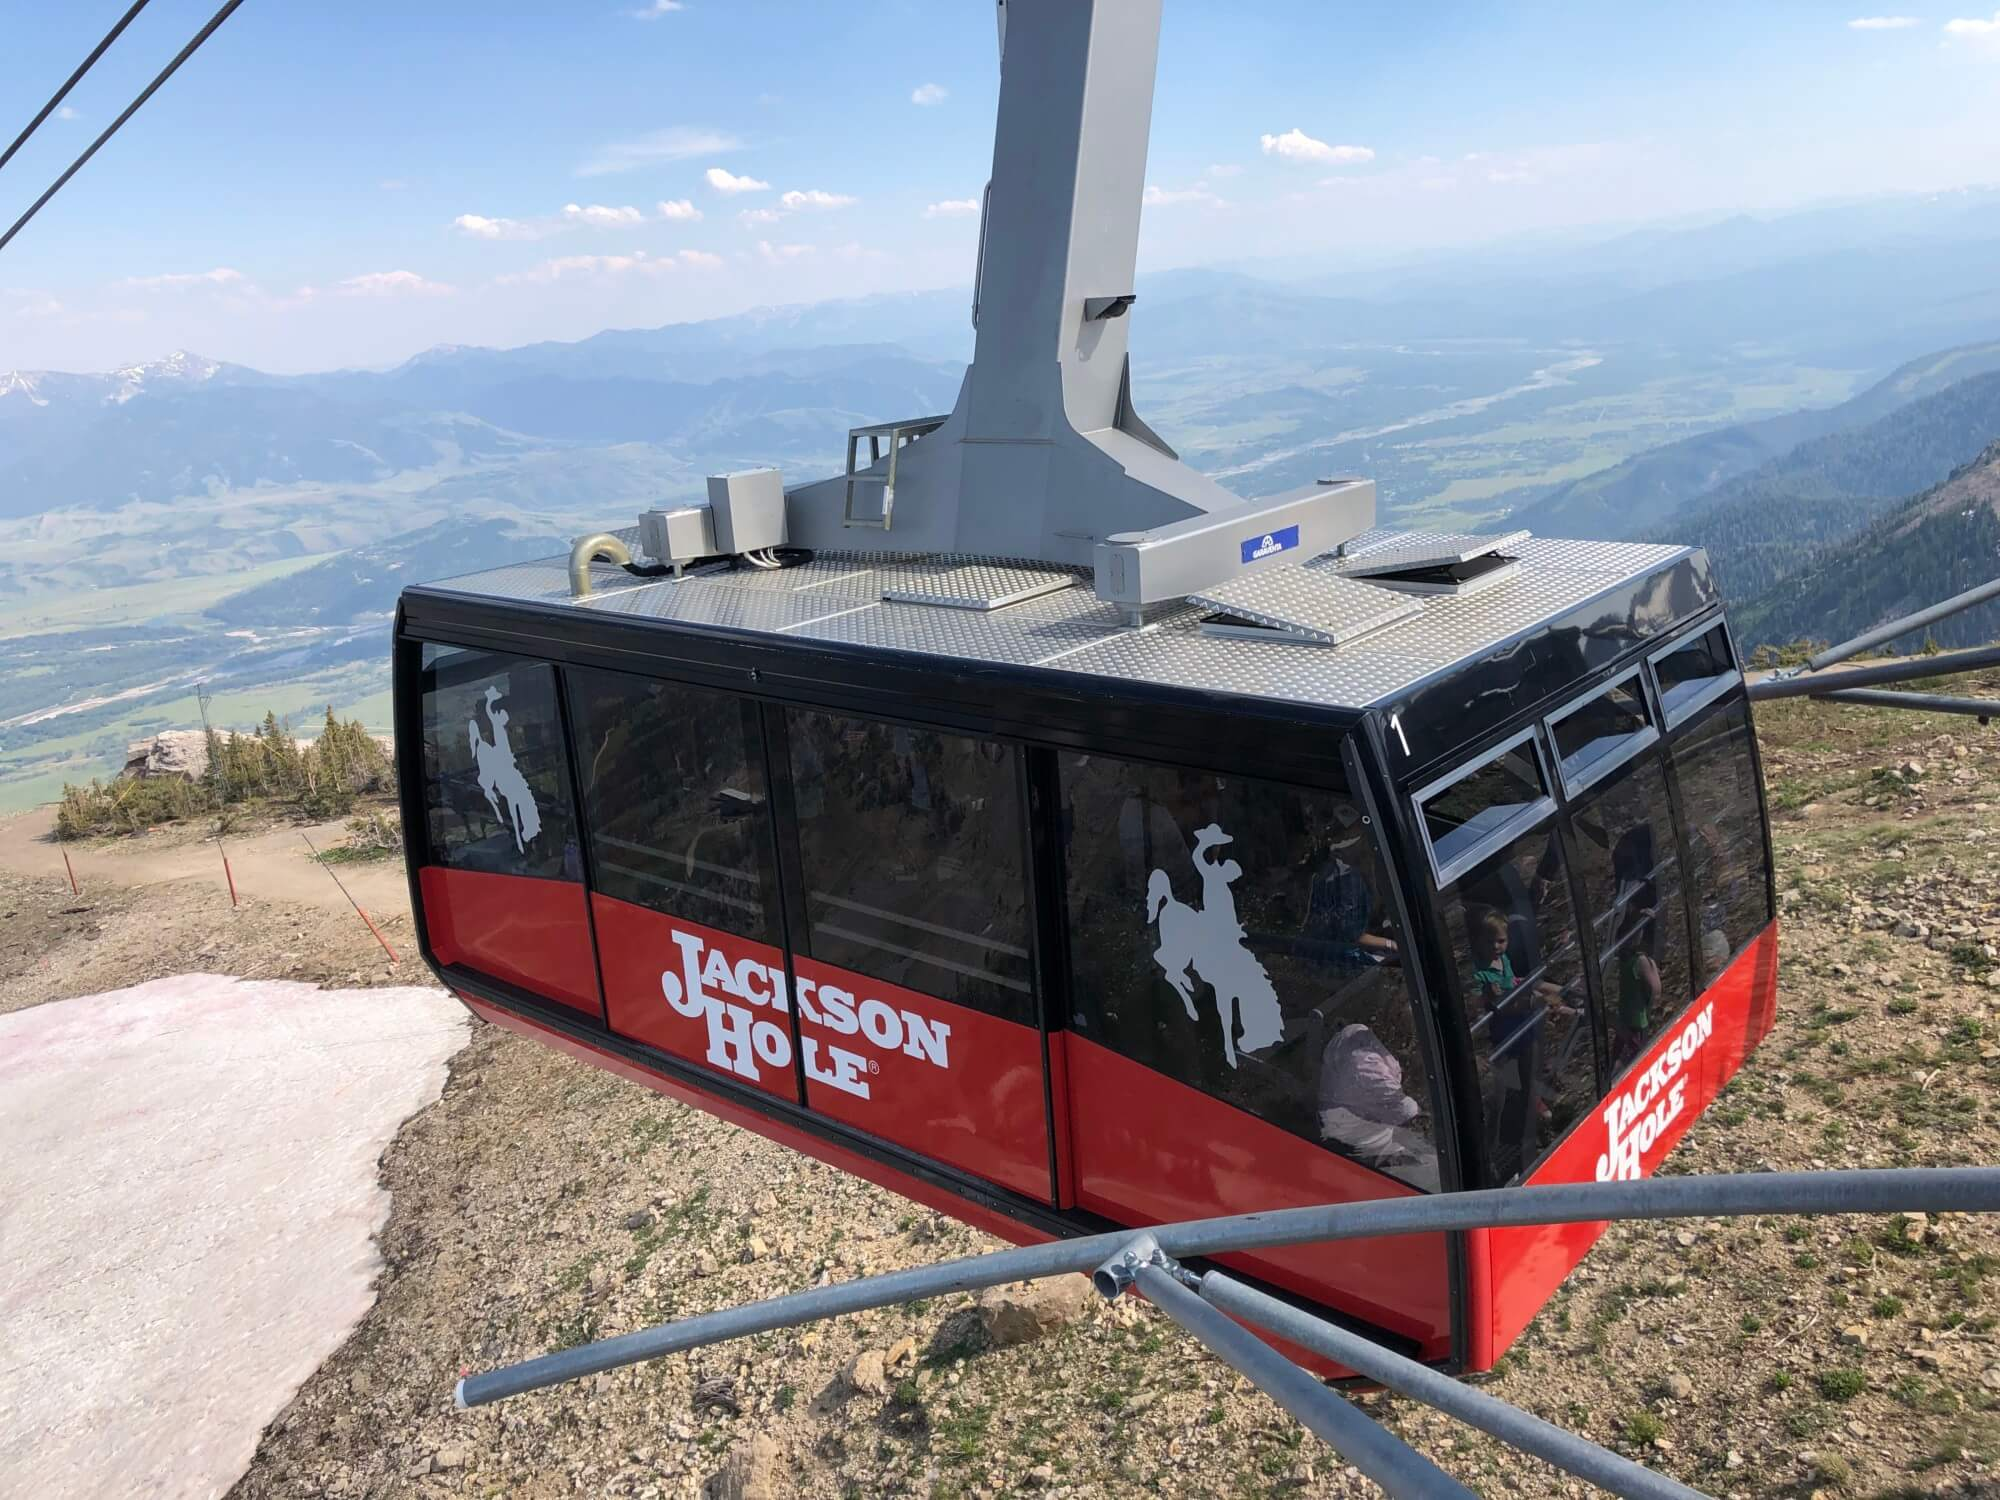 The Jackson Hole Aerial Tram at Teton Village takes guests up to Rendezvous Peak and gives stunning views of Jackson Hole.